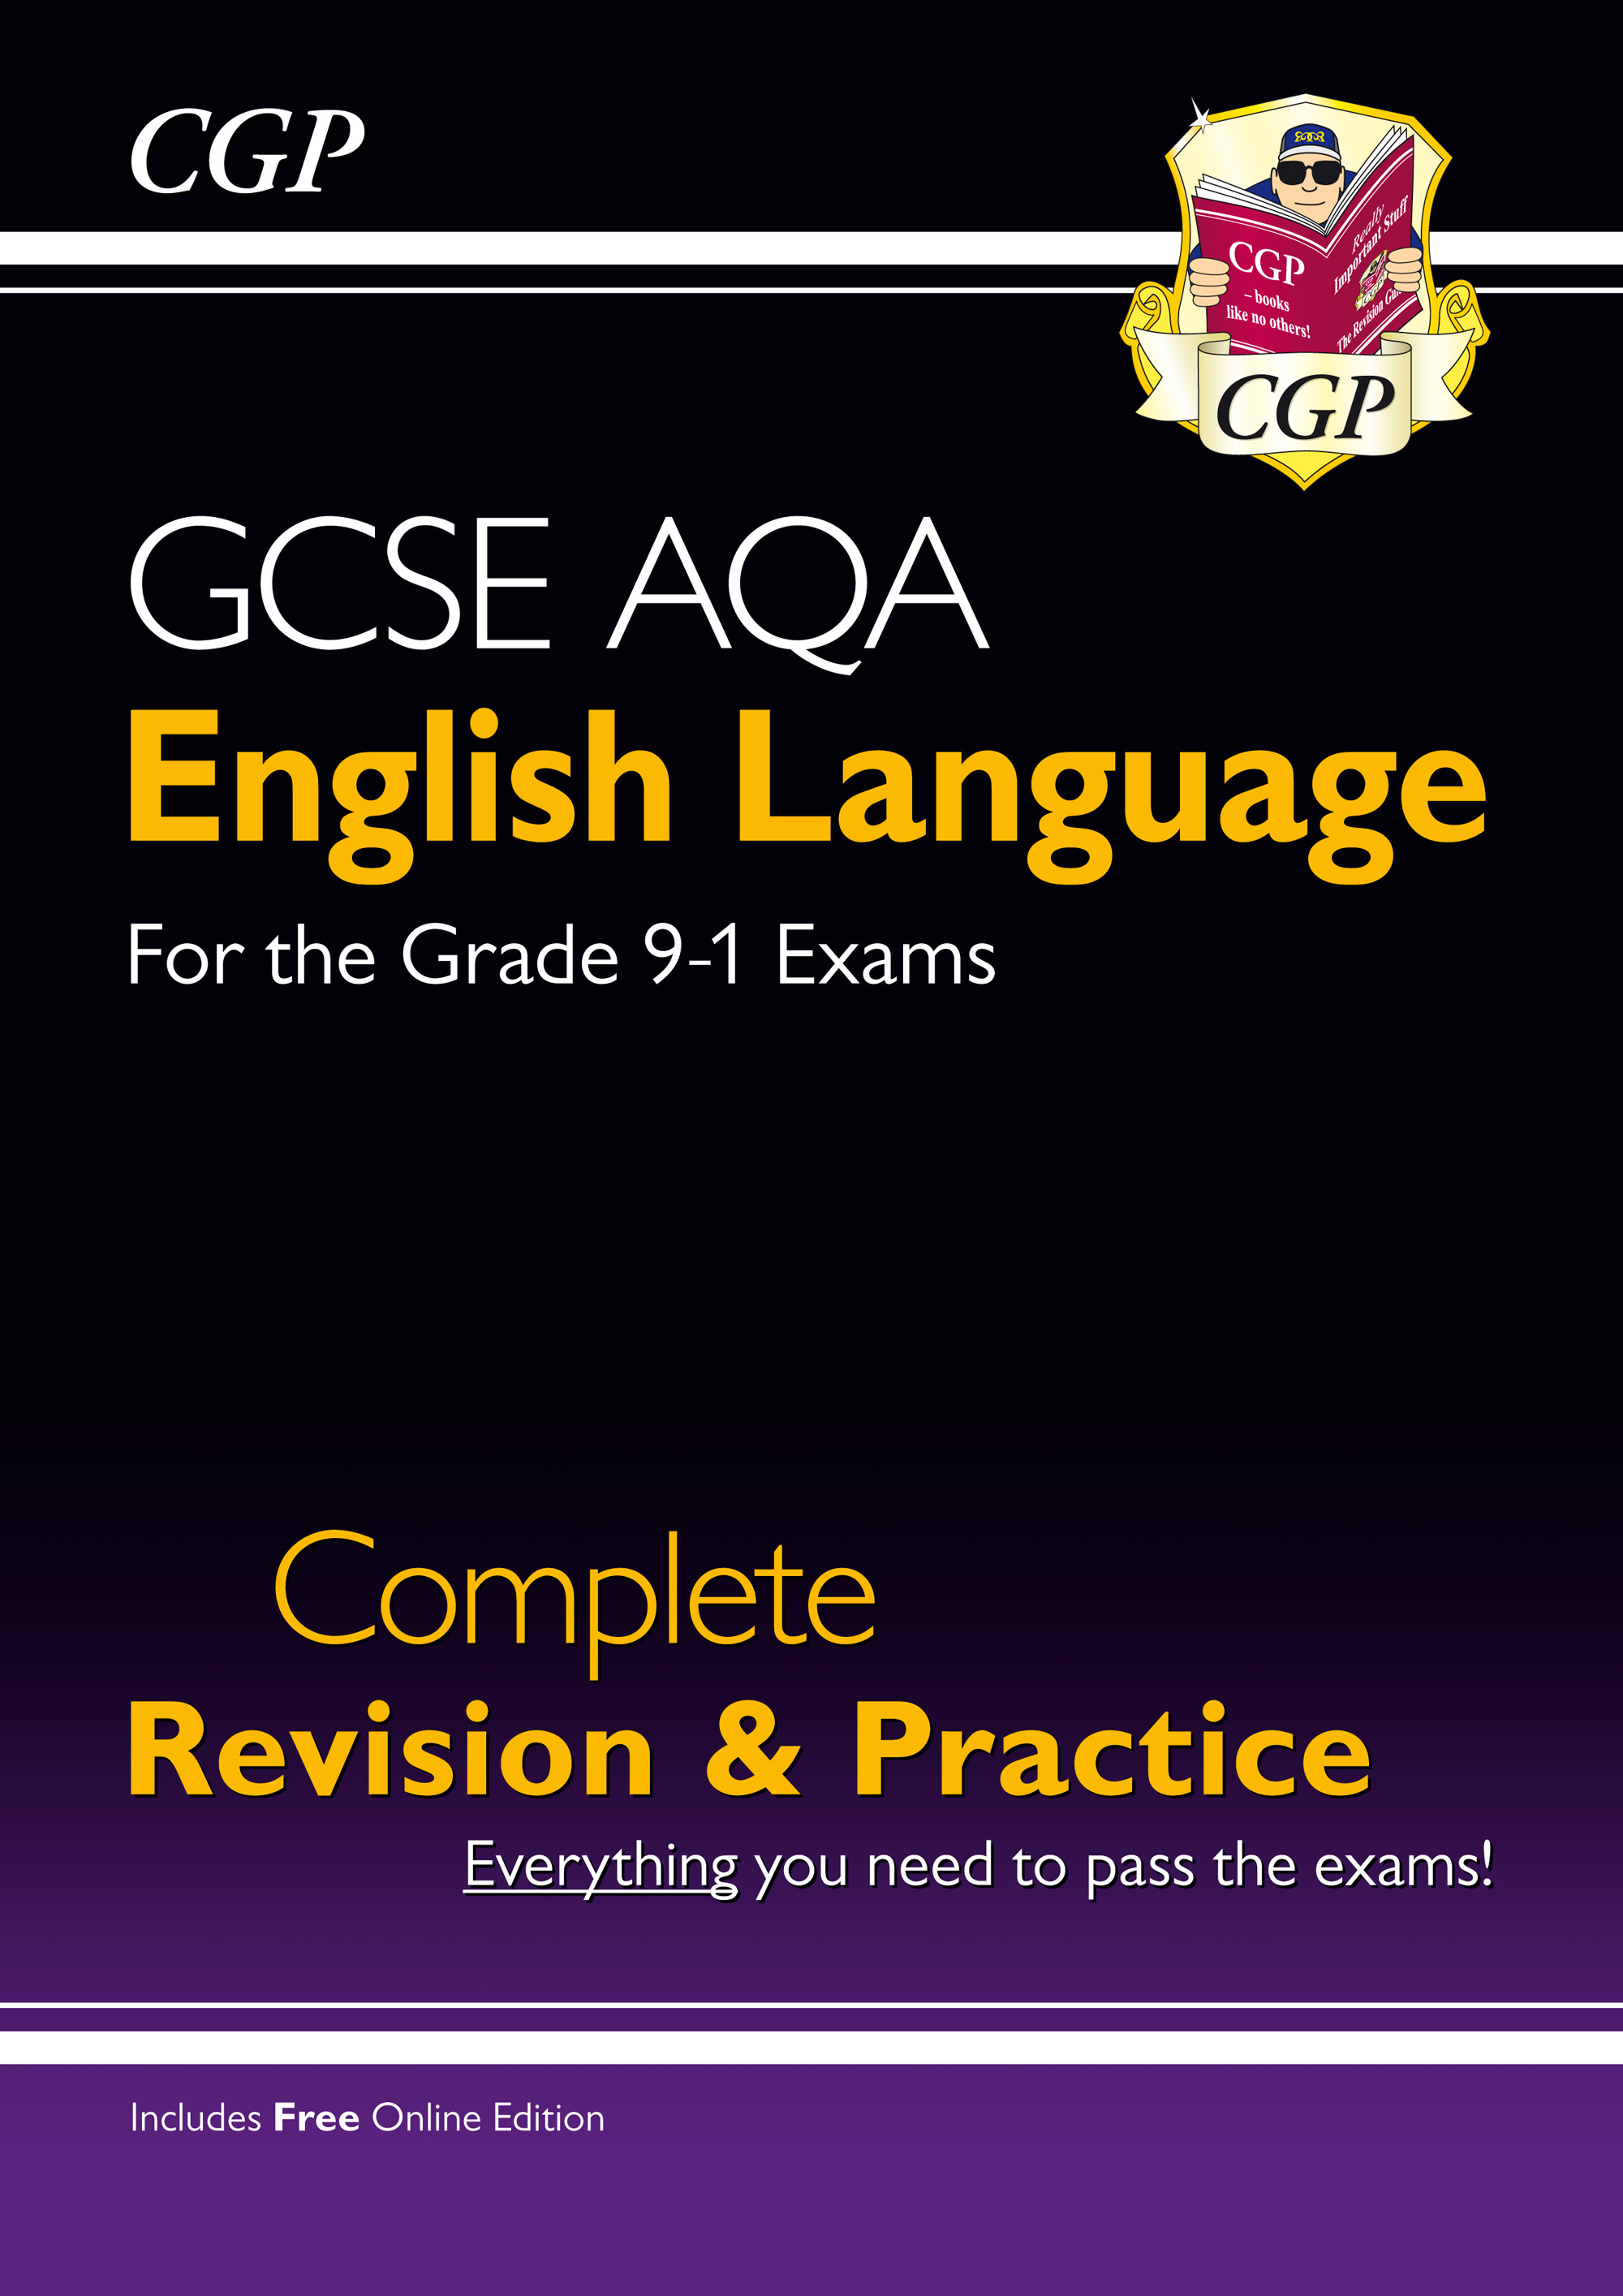 ENAS42 - GCSE English Language AQA Complete Revision & Practice - Grade 9-1 Course (with Online Edit